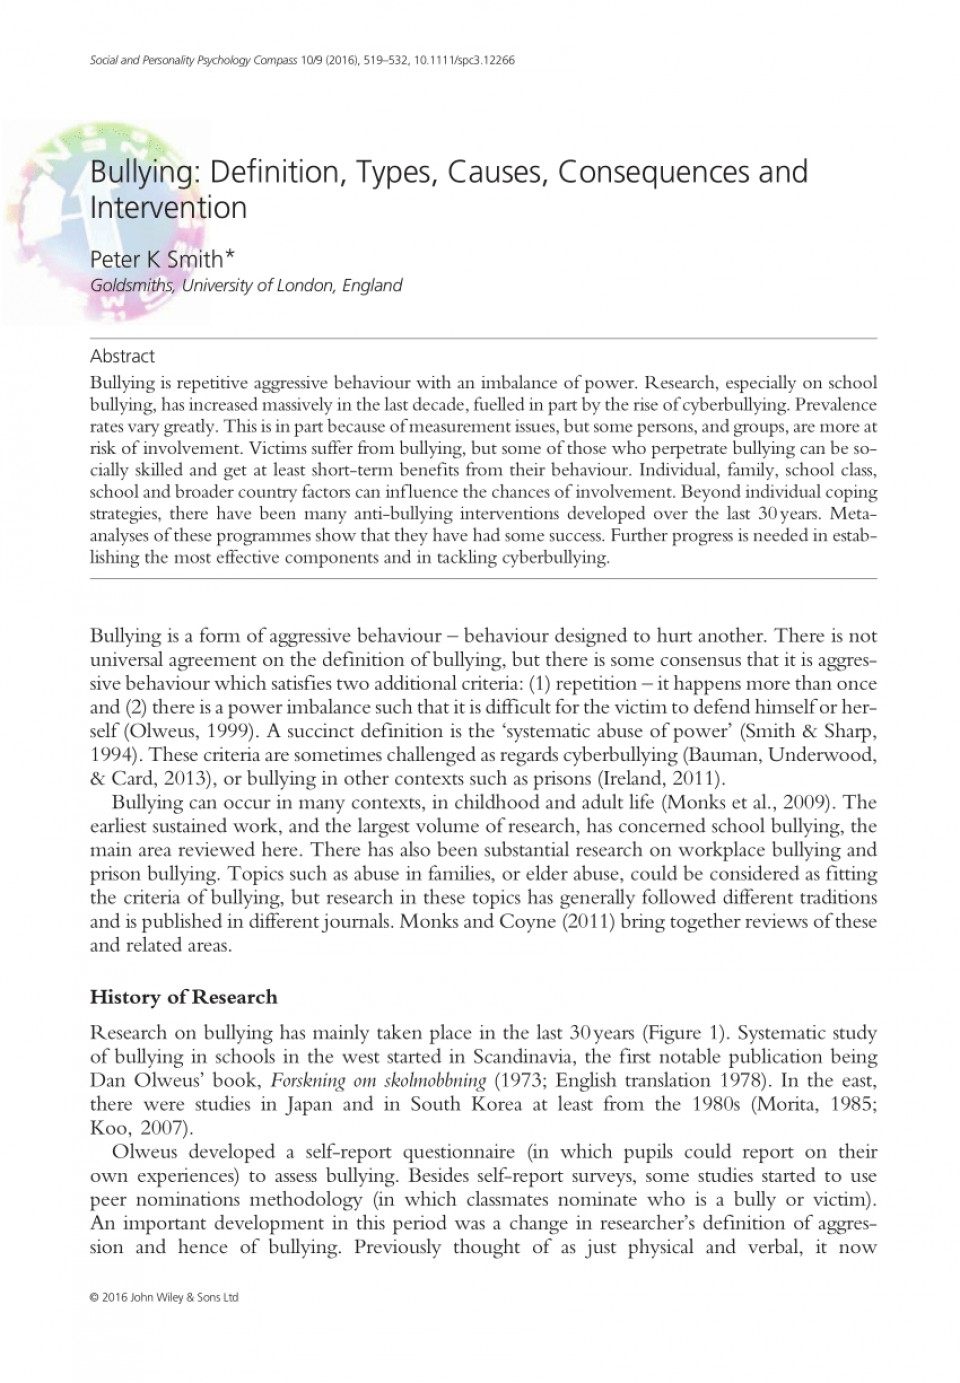 002 Largepreview Bullying Research Paper Imposing Pdf Short About Quantitative Effects Of 960